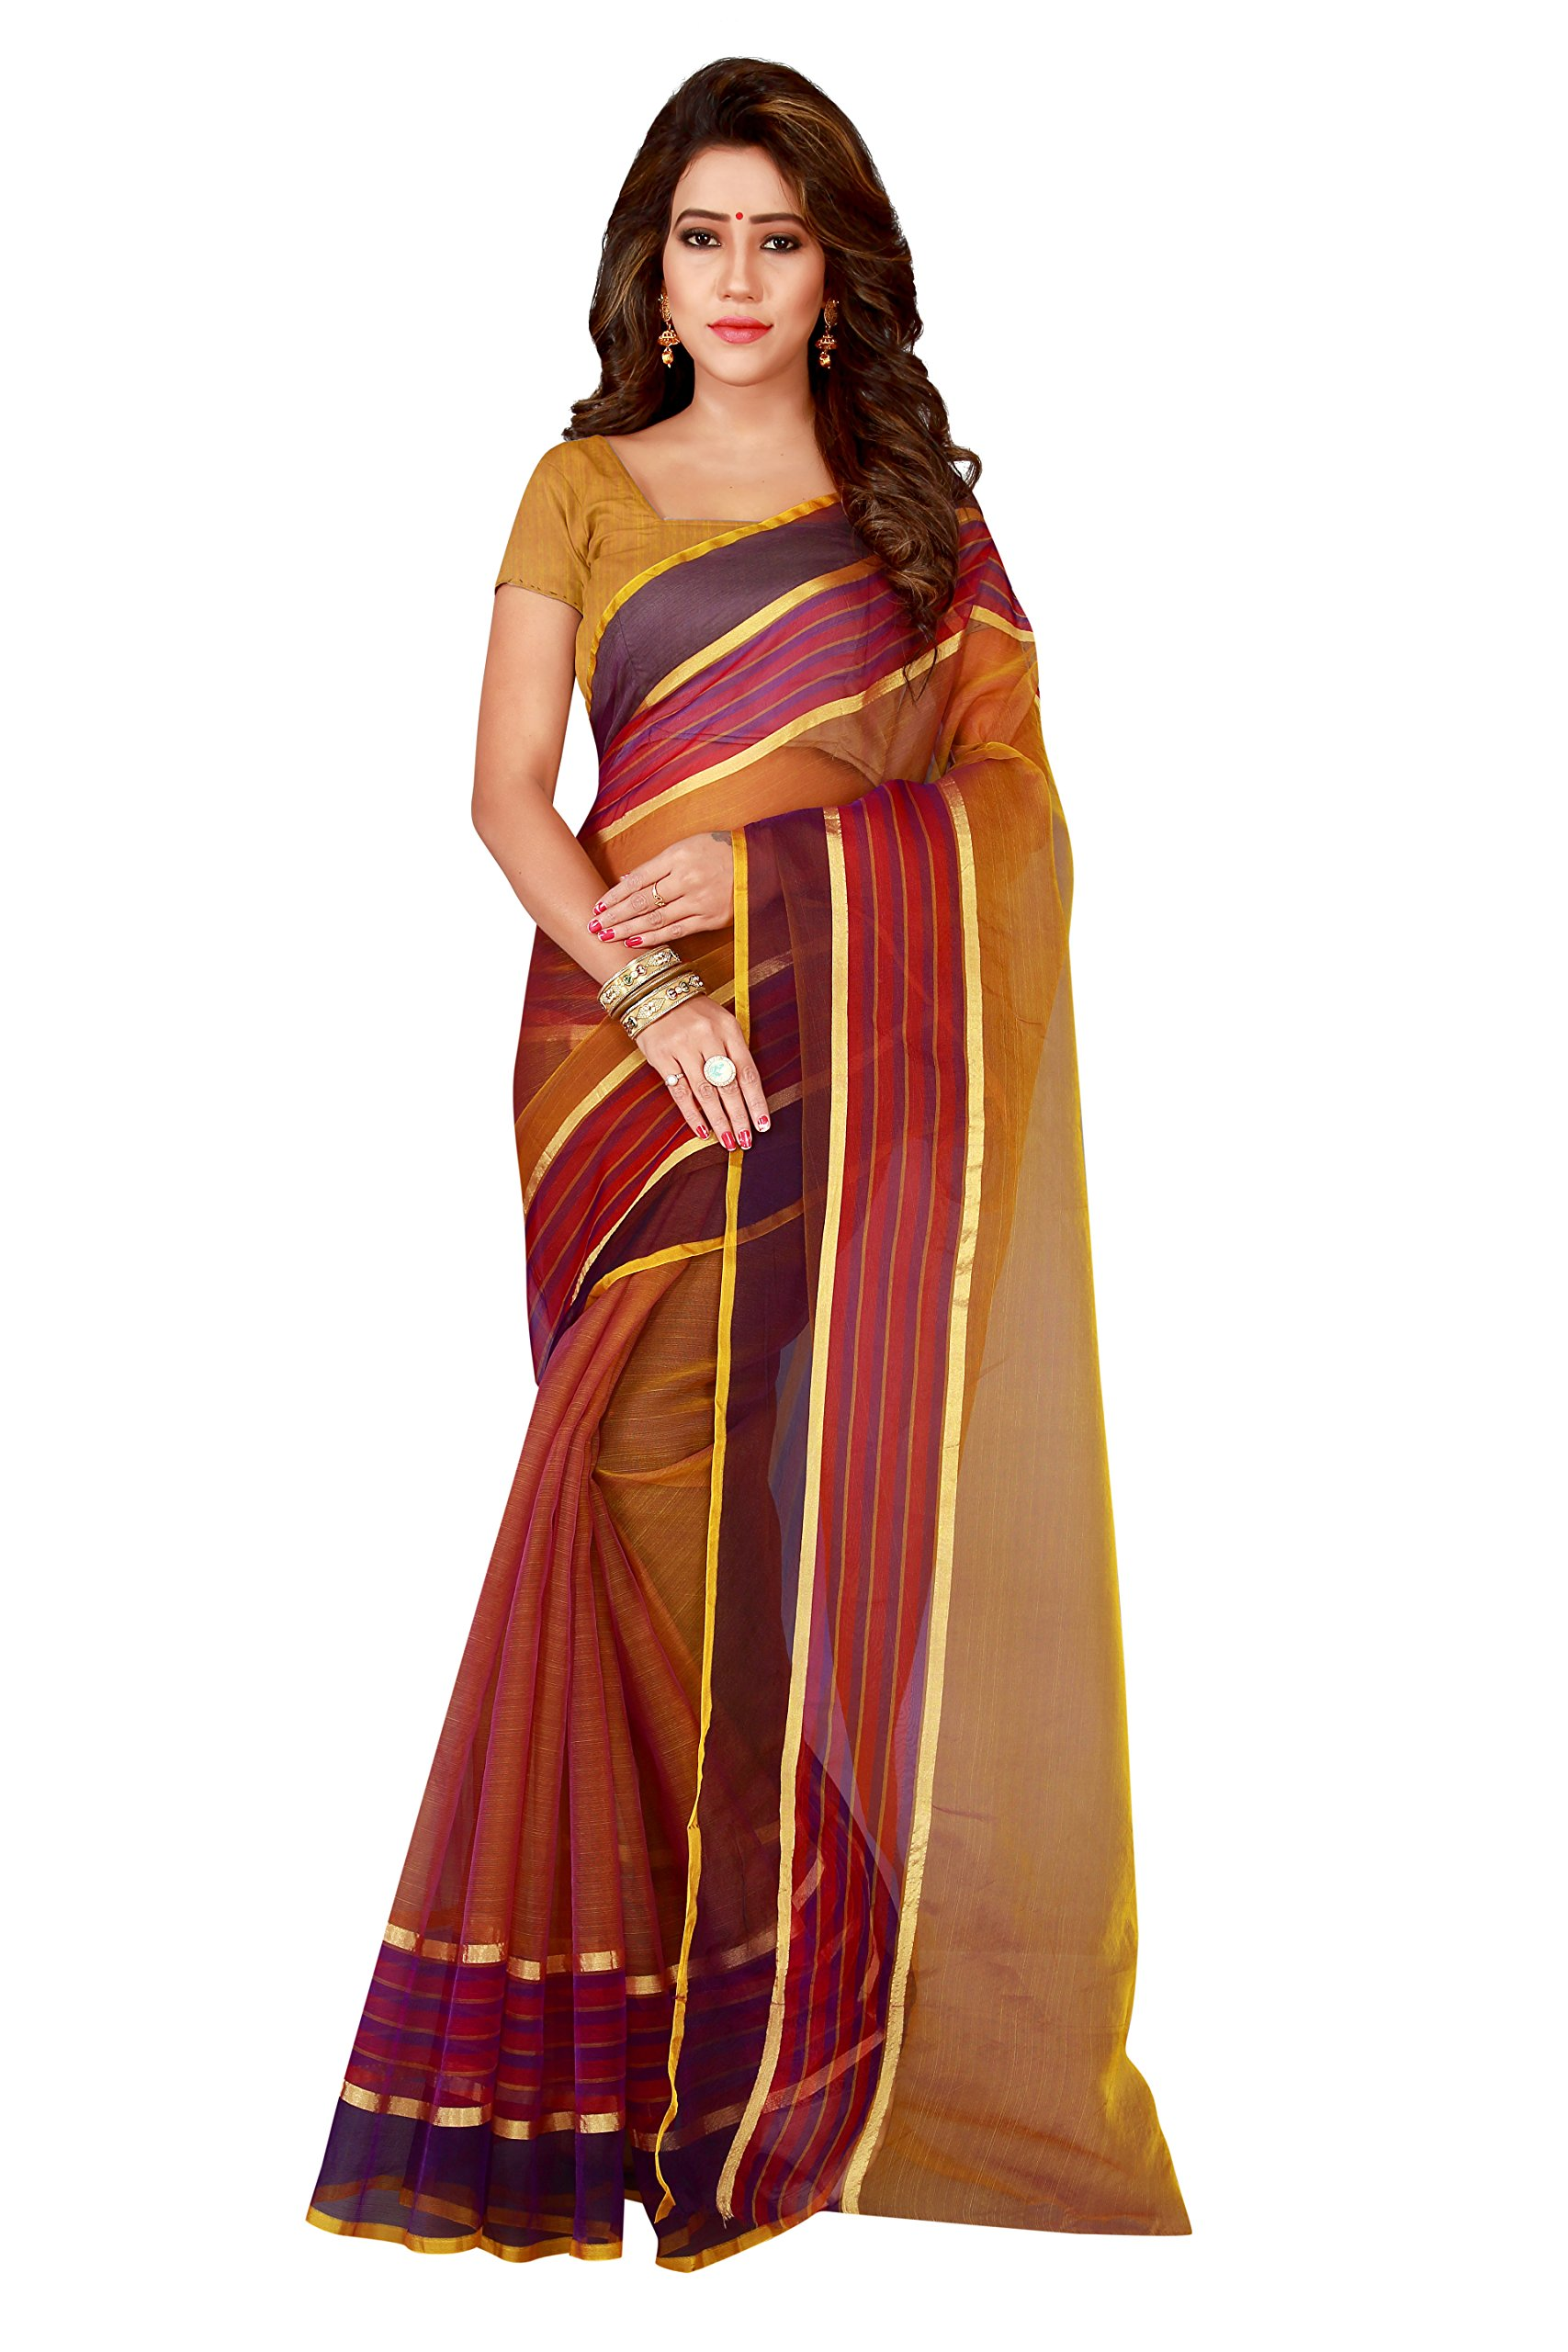 Shonaya Indian Women`S Party Wear Art Silk Saree With Unstitched Blouse Piece (Brown)